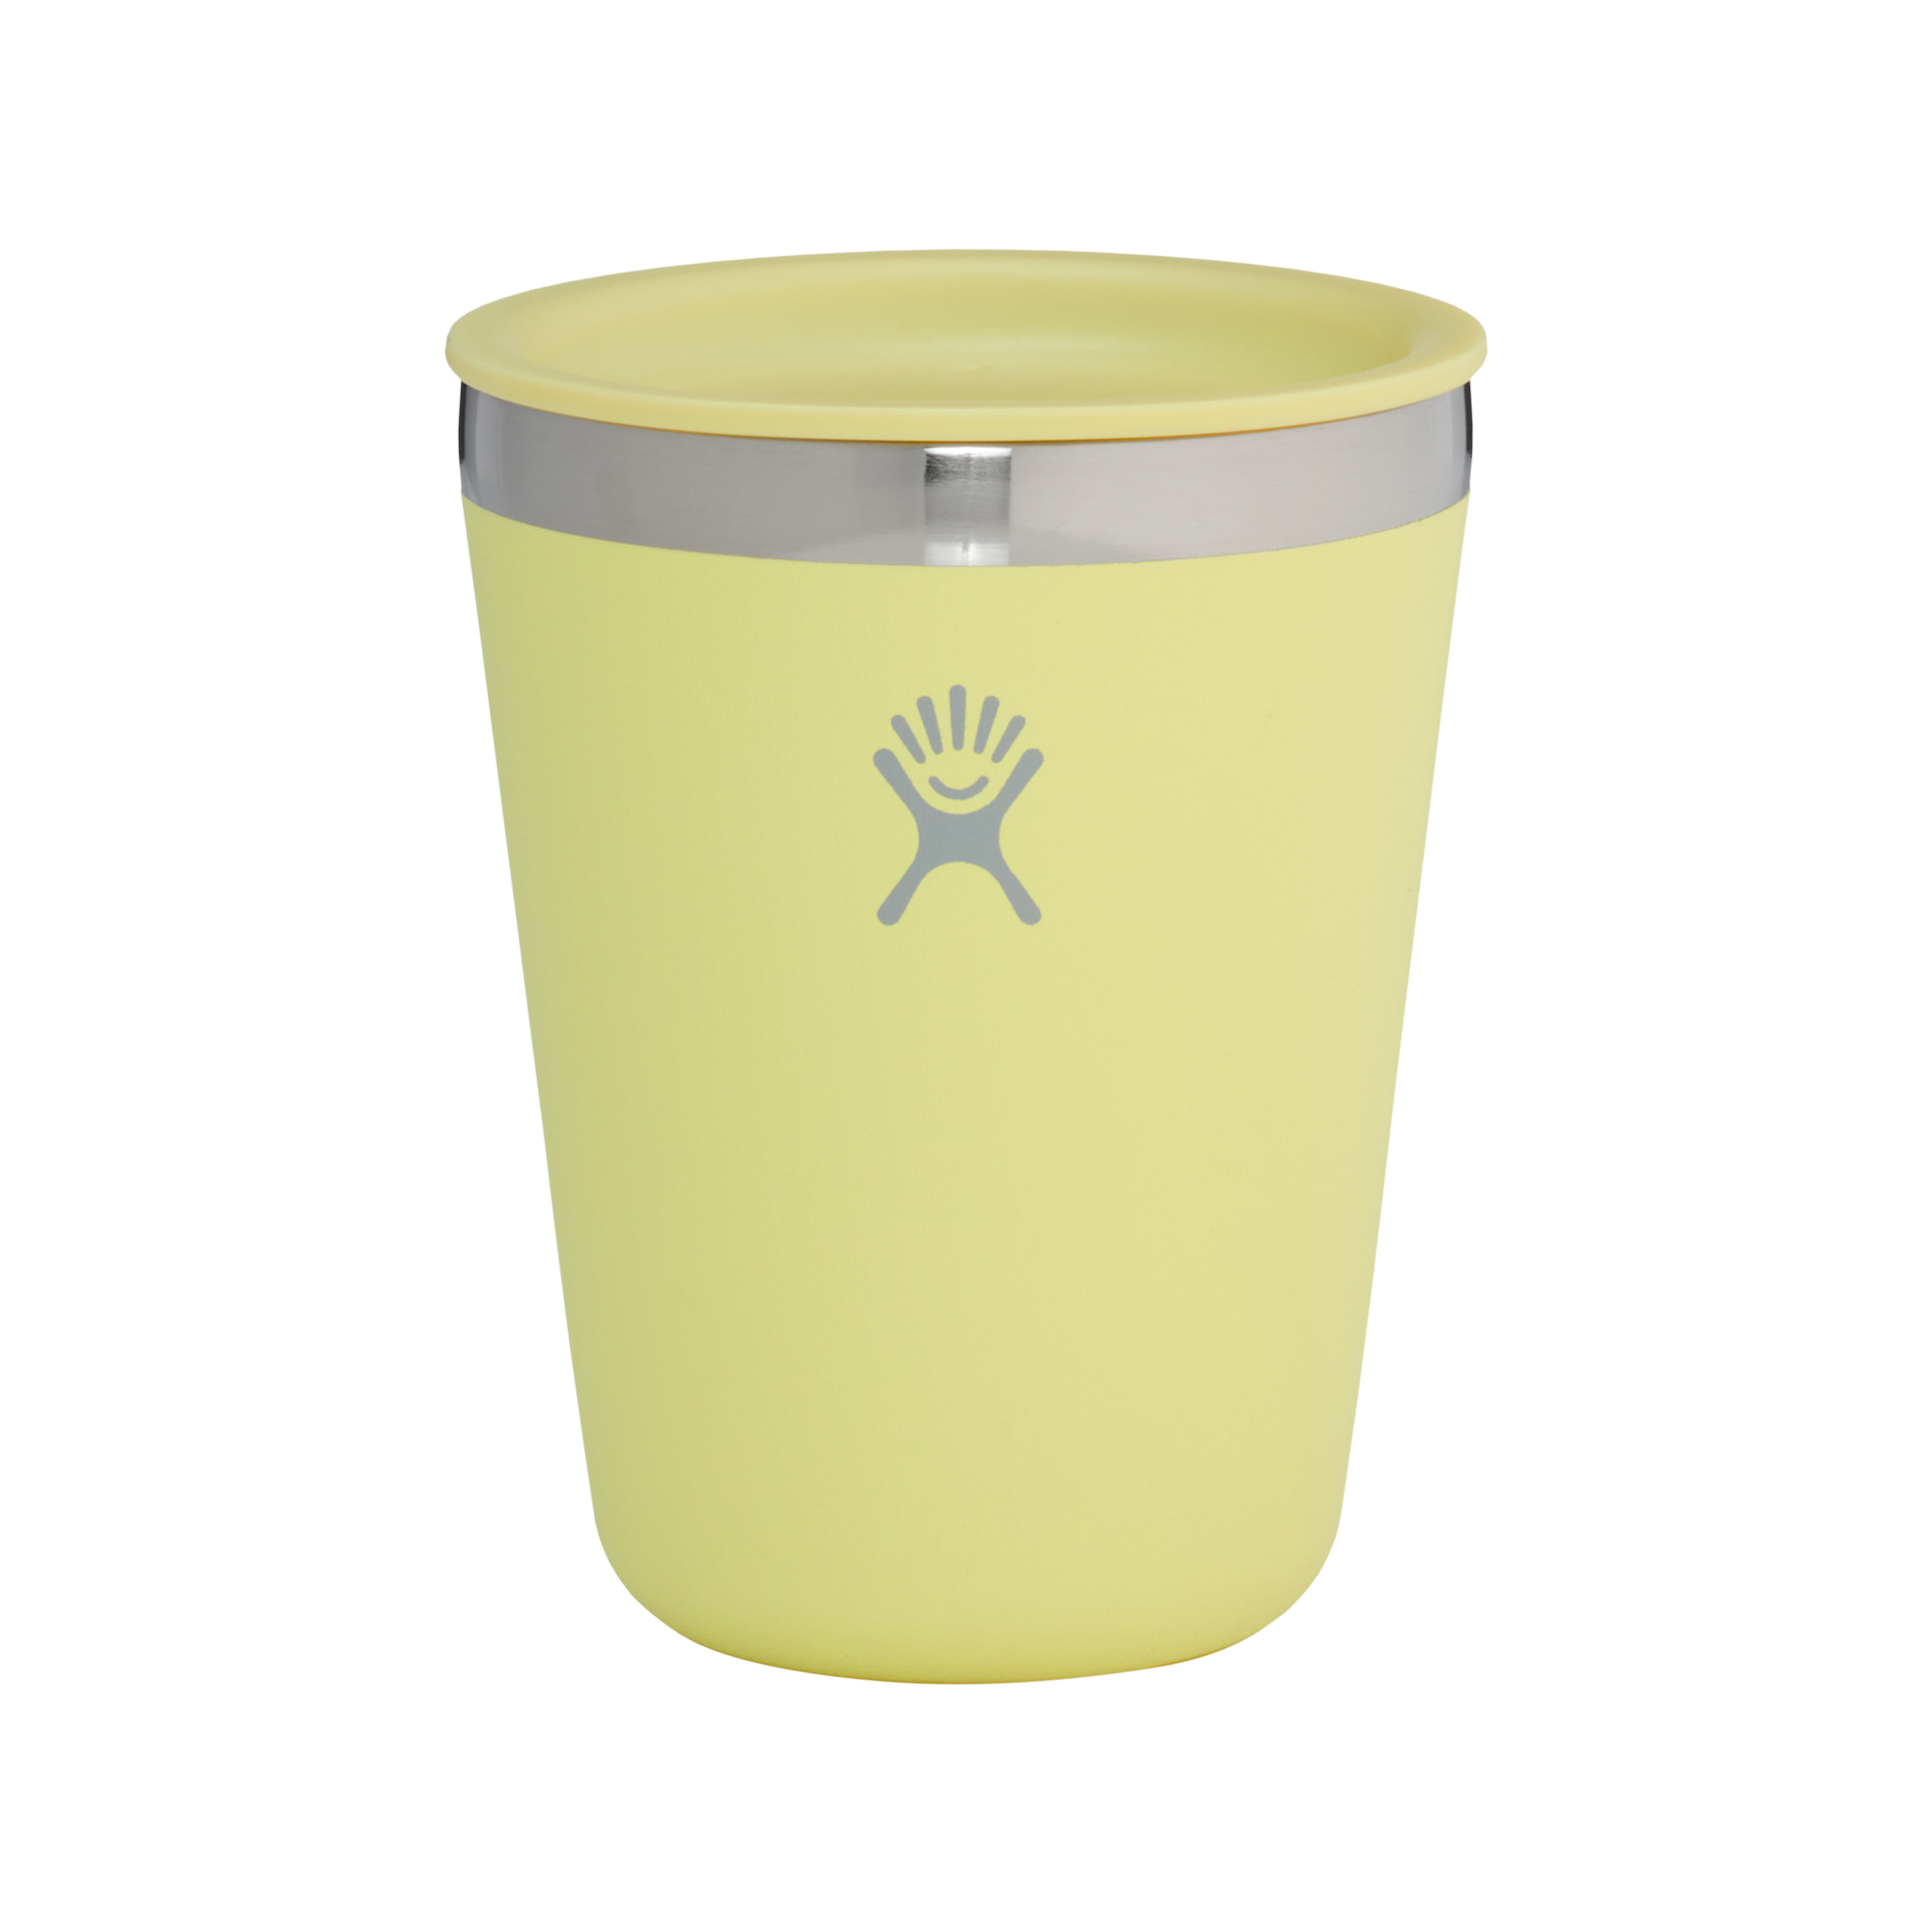 Hydro Flask - side view of yellow insulated tumbler with lid against a white background